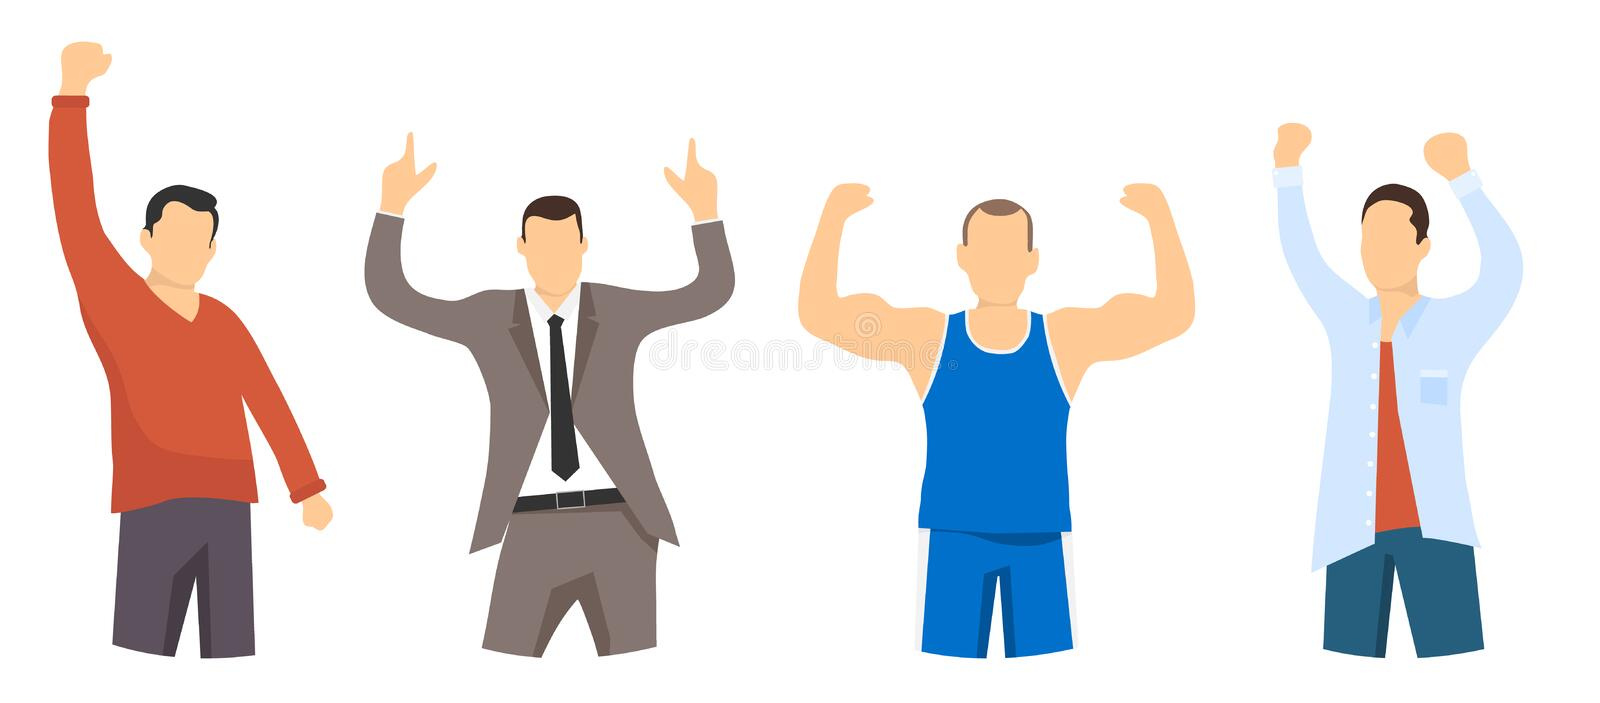 Portraits of successful and confident people. People are winners. Businessman, athlete, office worker, student. Winner man.Flat, royalty free illustration